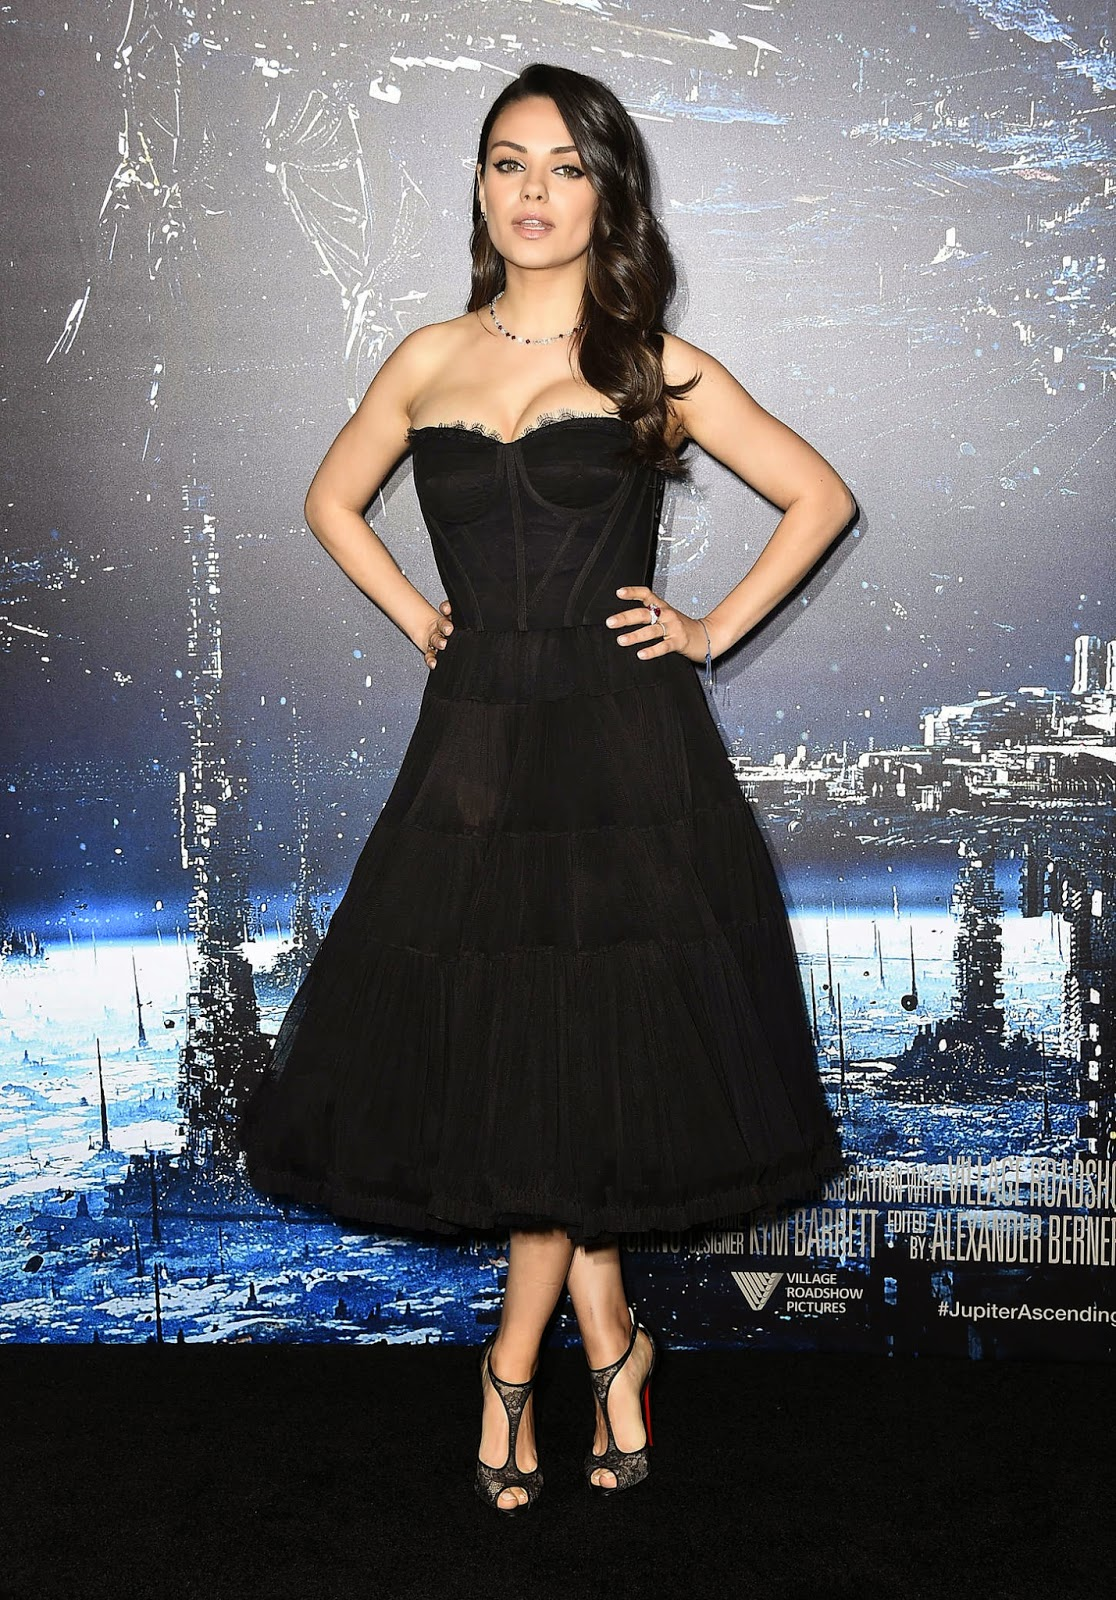 Mila Kunis flaunts a Dolce & Gabbana corset dress at the 'Jupiter Ascending' Hollywood premiere